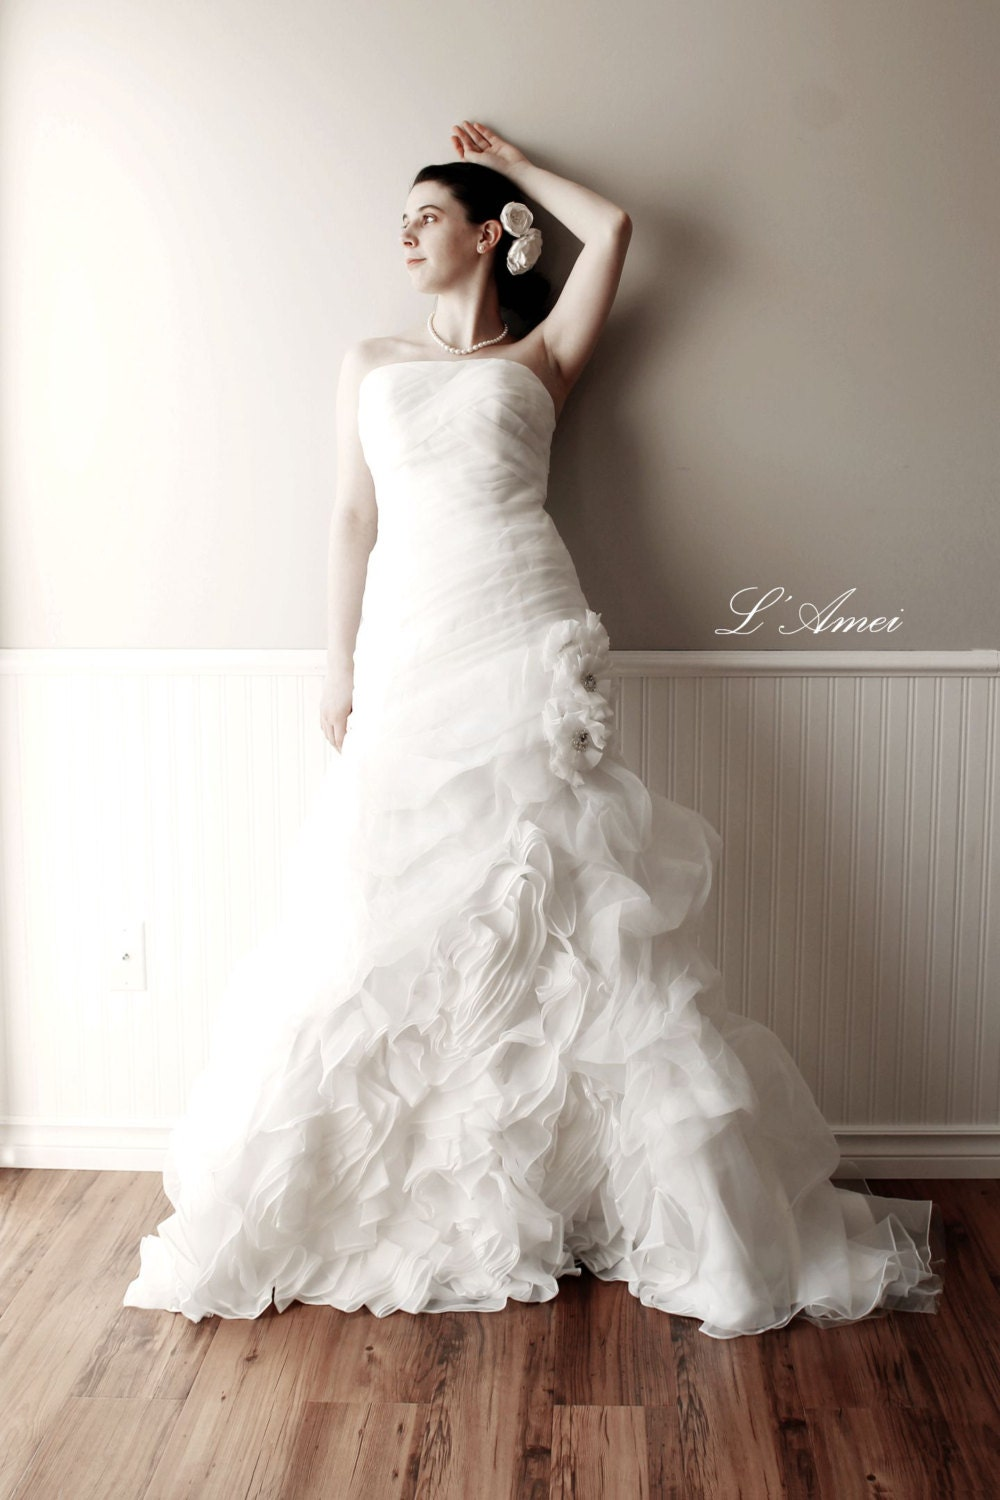 Black Wedding Dress With Train : Organza flower mermaid wedding gown bridal dress with puffy train